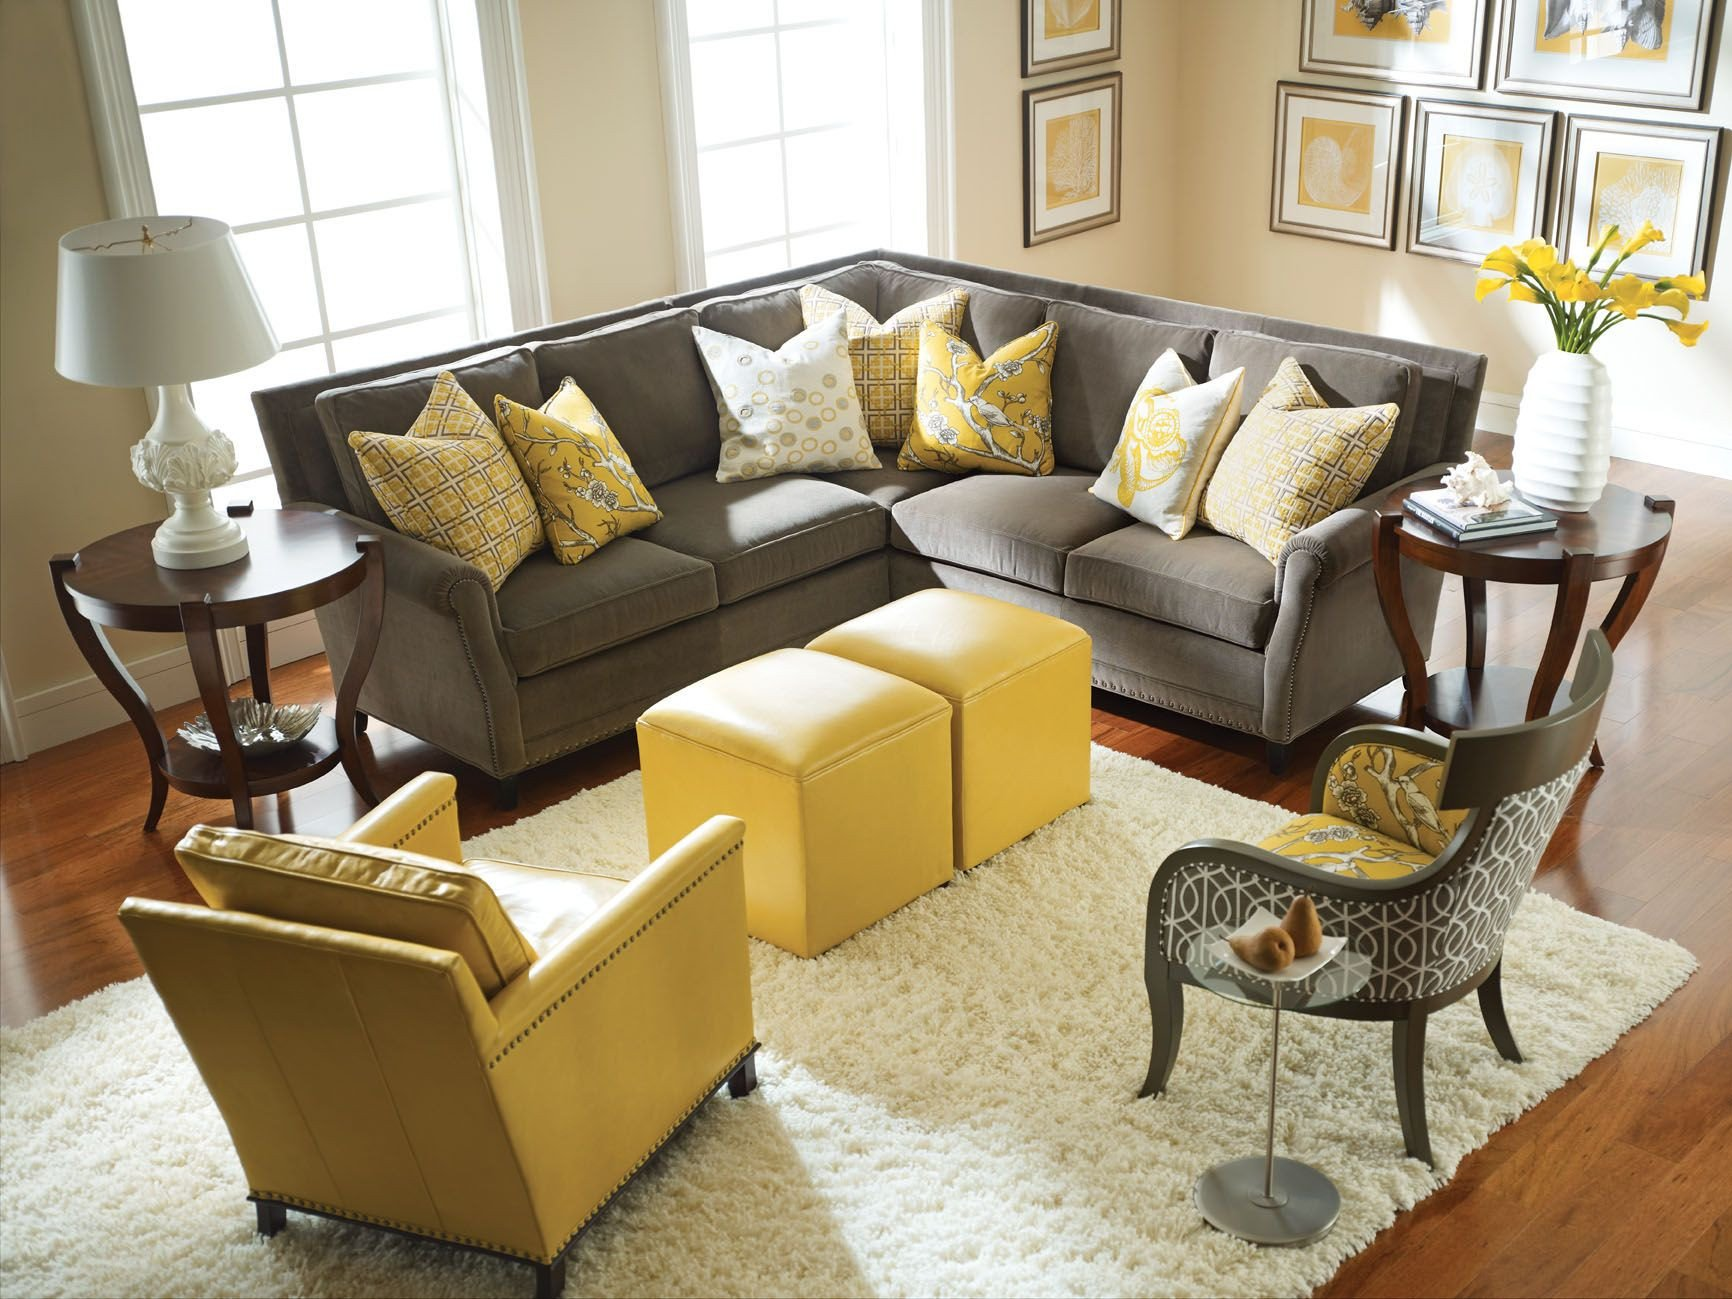 Yellow and Grey Room Decor Elegant Yellow and Gray Rooms Decorating